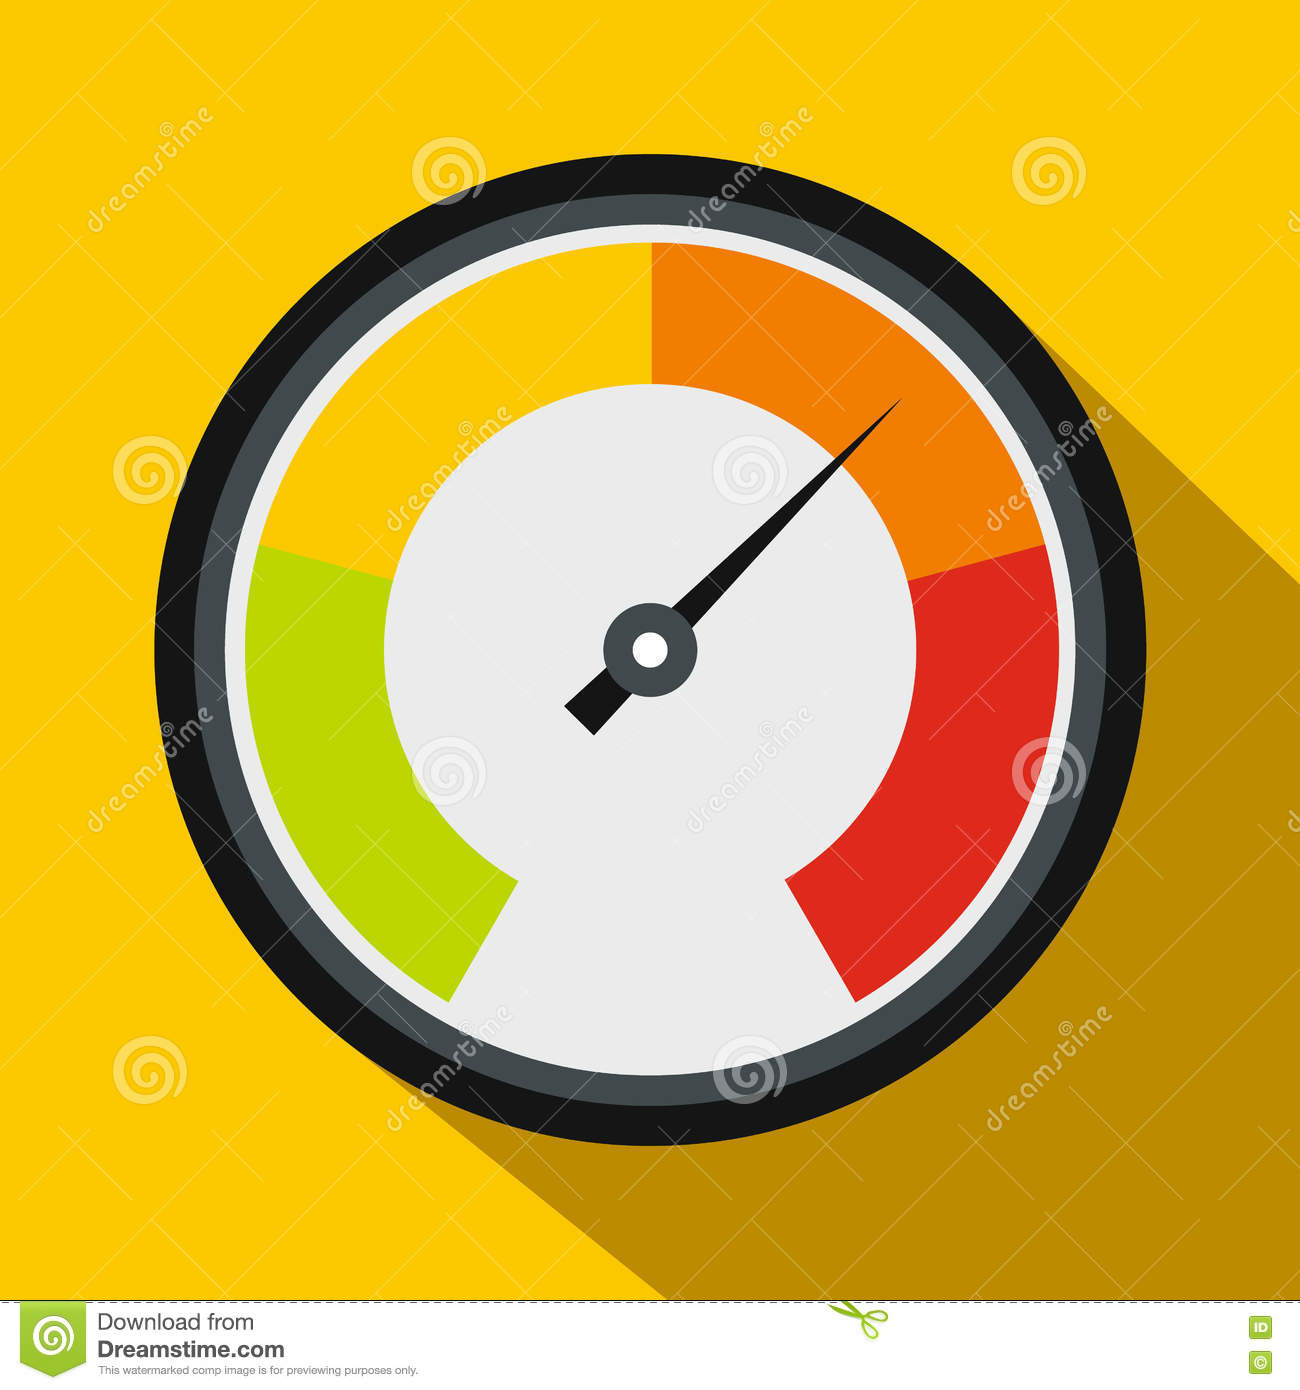 Speedometer Icon In Flat Style Stock Vector - Illustration ...